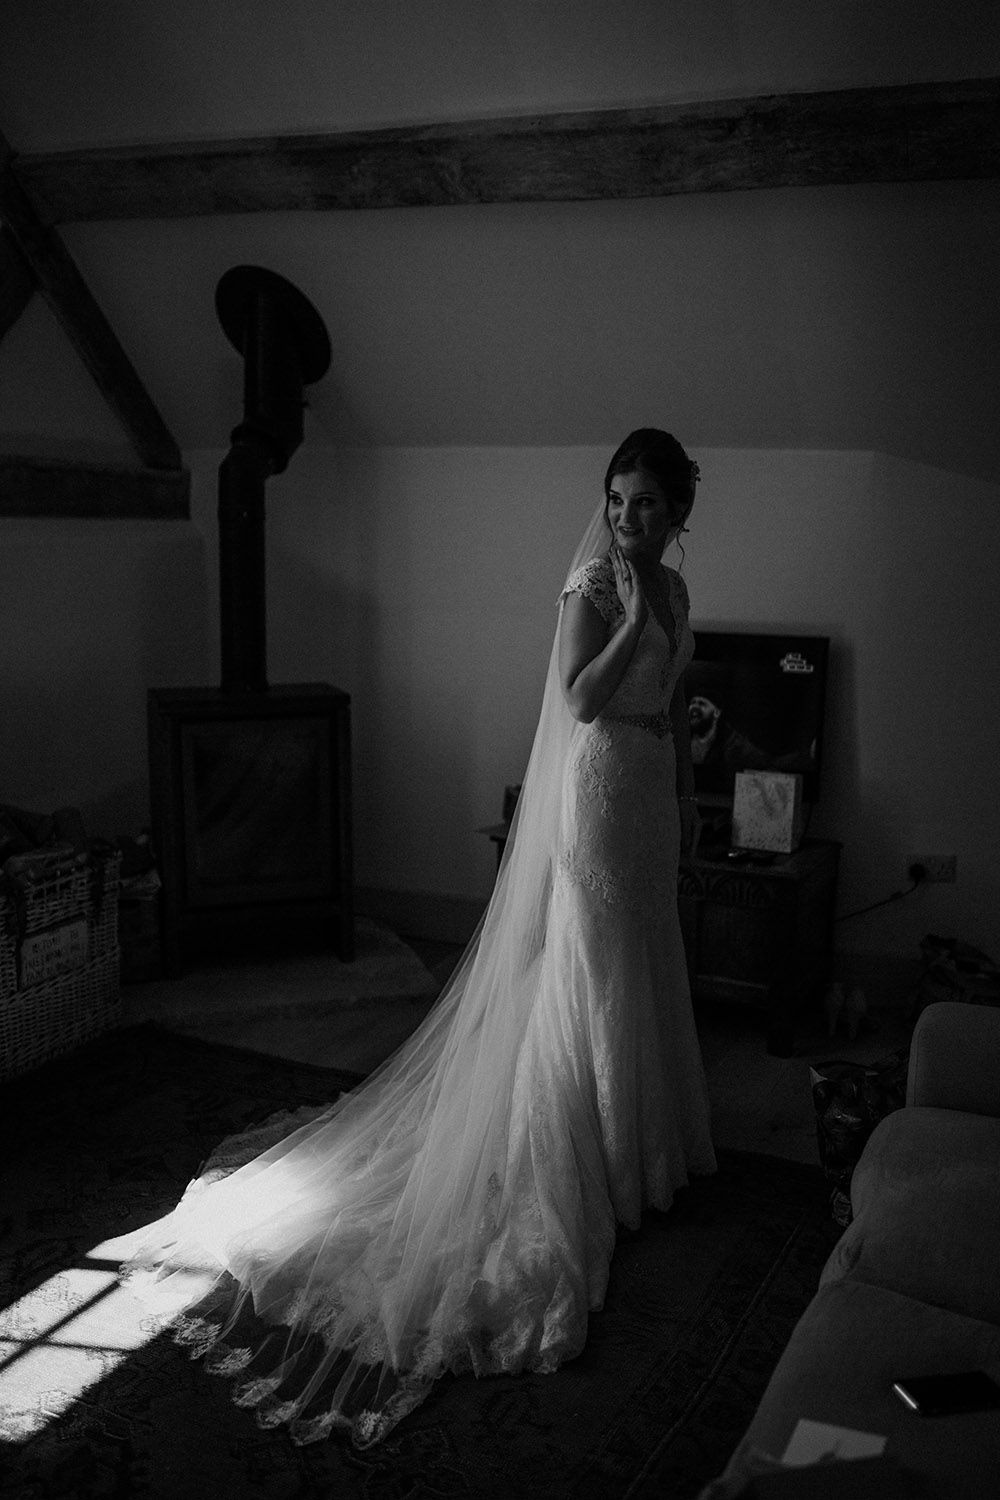 Pimhill barn wedding in shrophire super personal u magical with cat